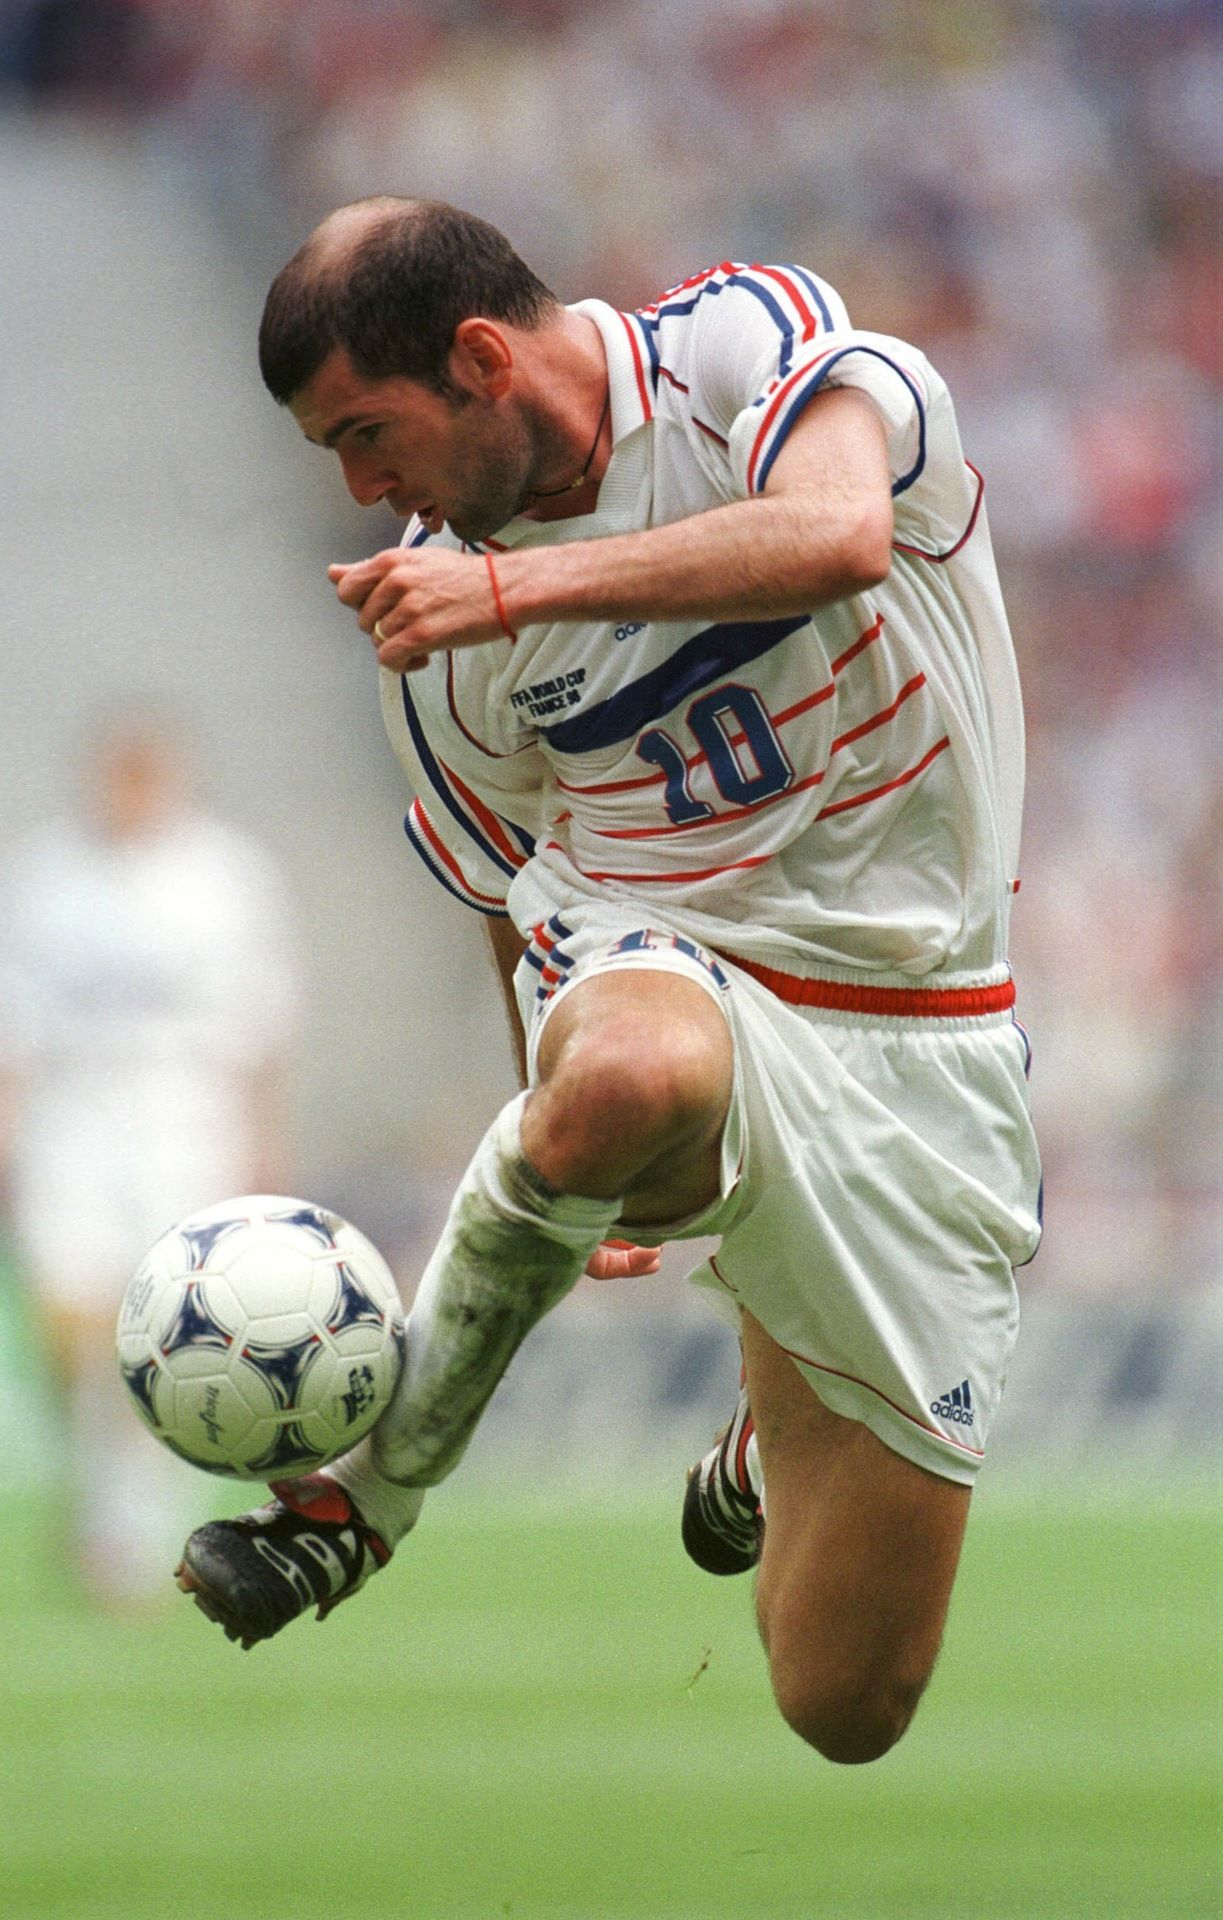 Zinedine Zidane Photos De Football Joueurs De Foot Joueur De Football